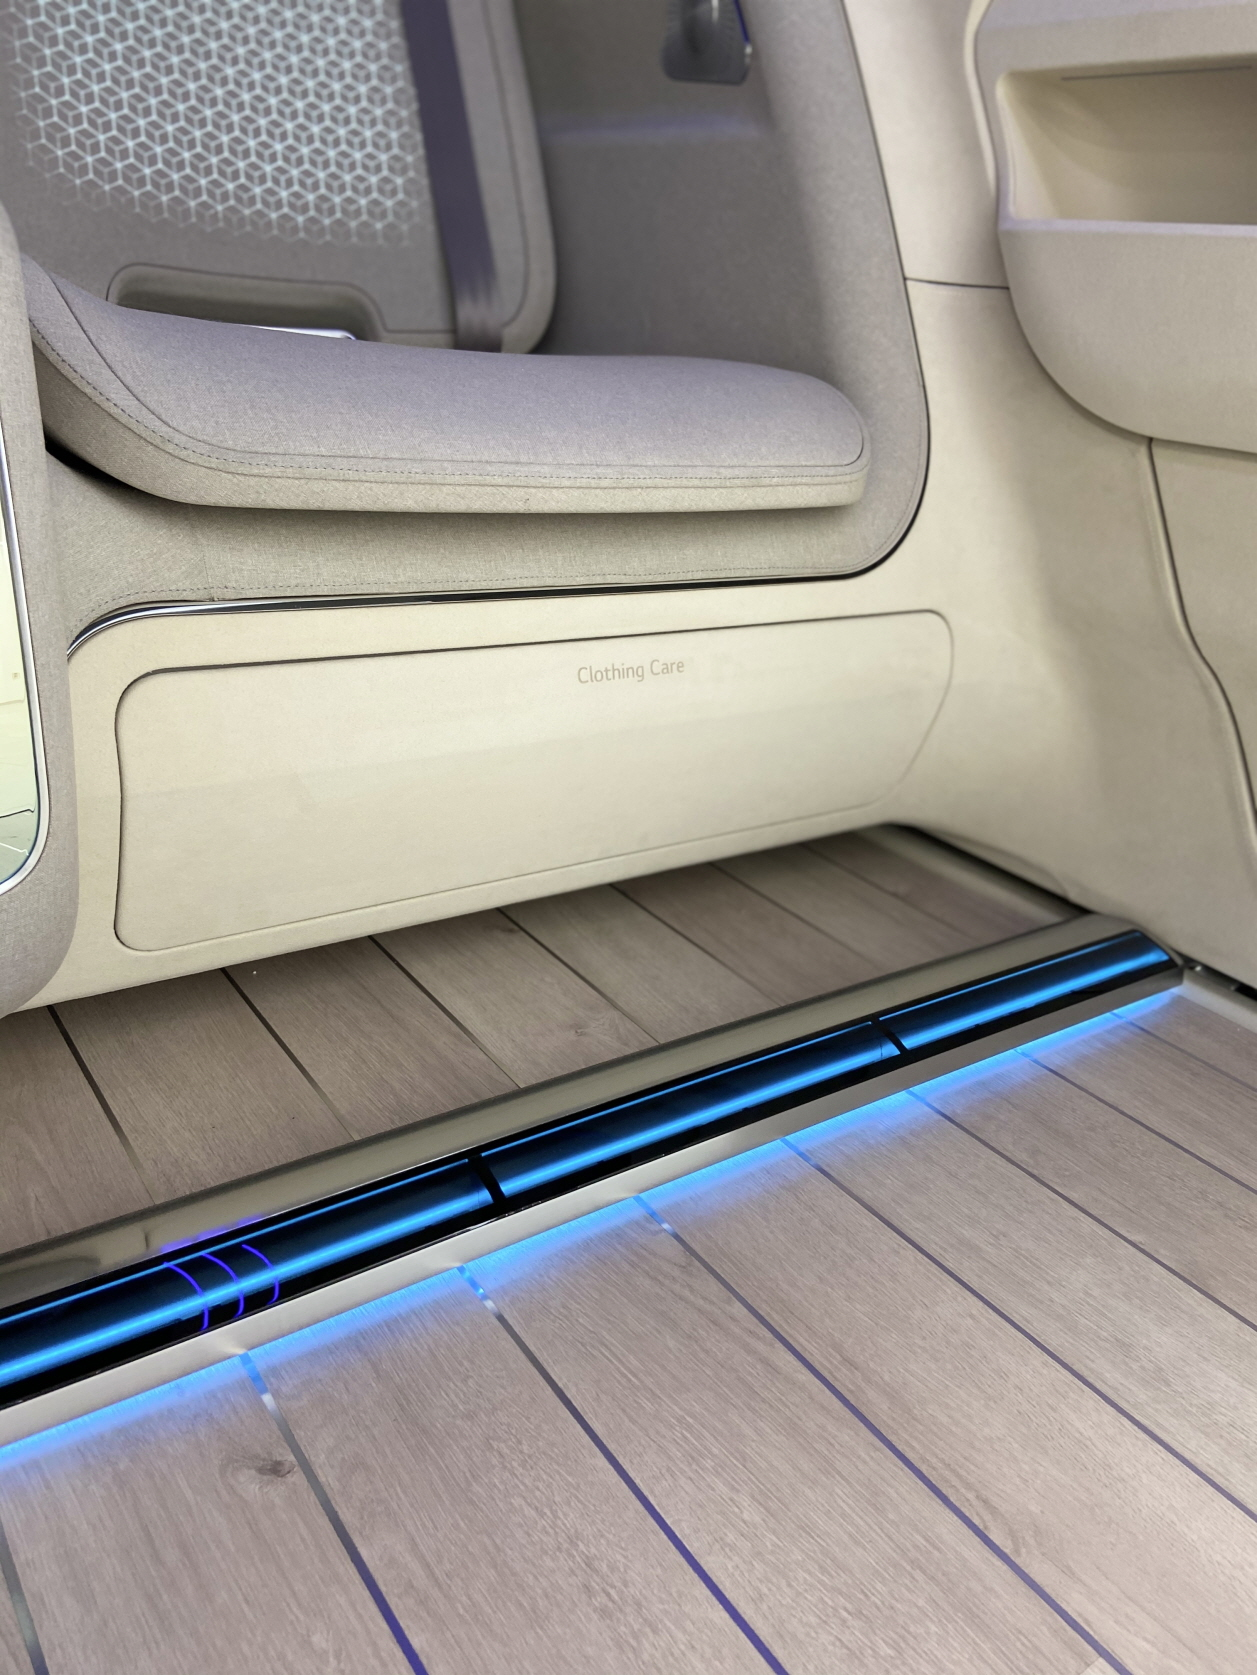 The Clothing Care compartment located under the seat where clothes can be kept neat and wrinkle-free during the drive